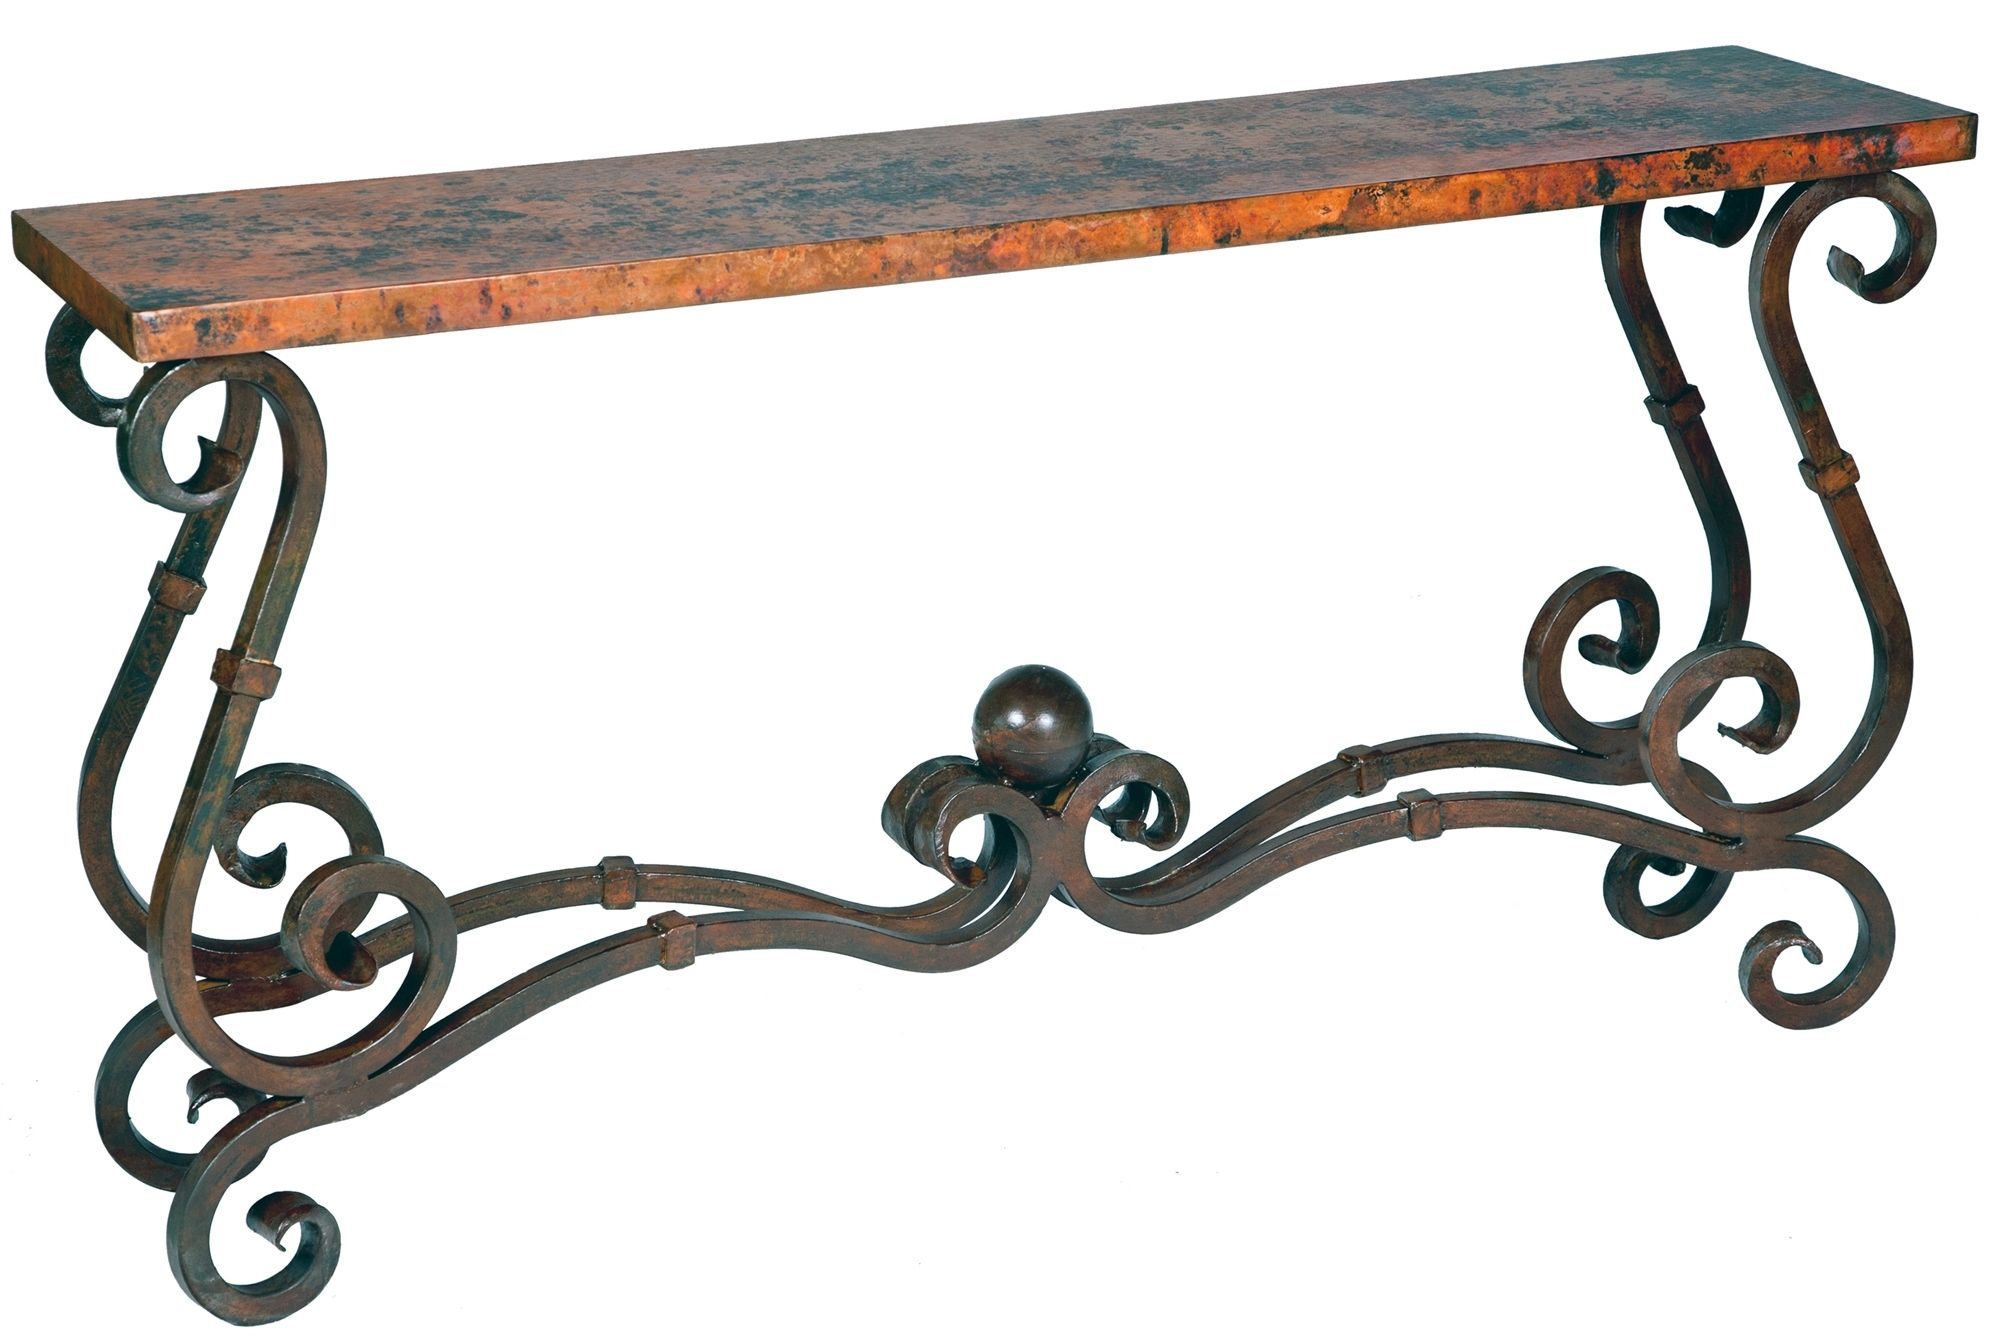 Stunning Copper Wrought Iron Furniture By Prima Wrought Iron Furniture Wrought Iron Console Table Iron Furniture Wrought iron accent table